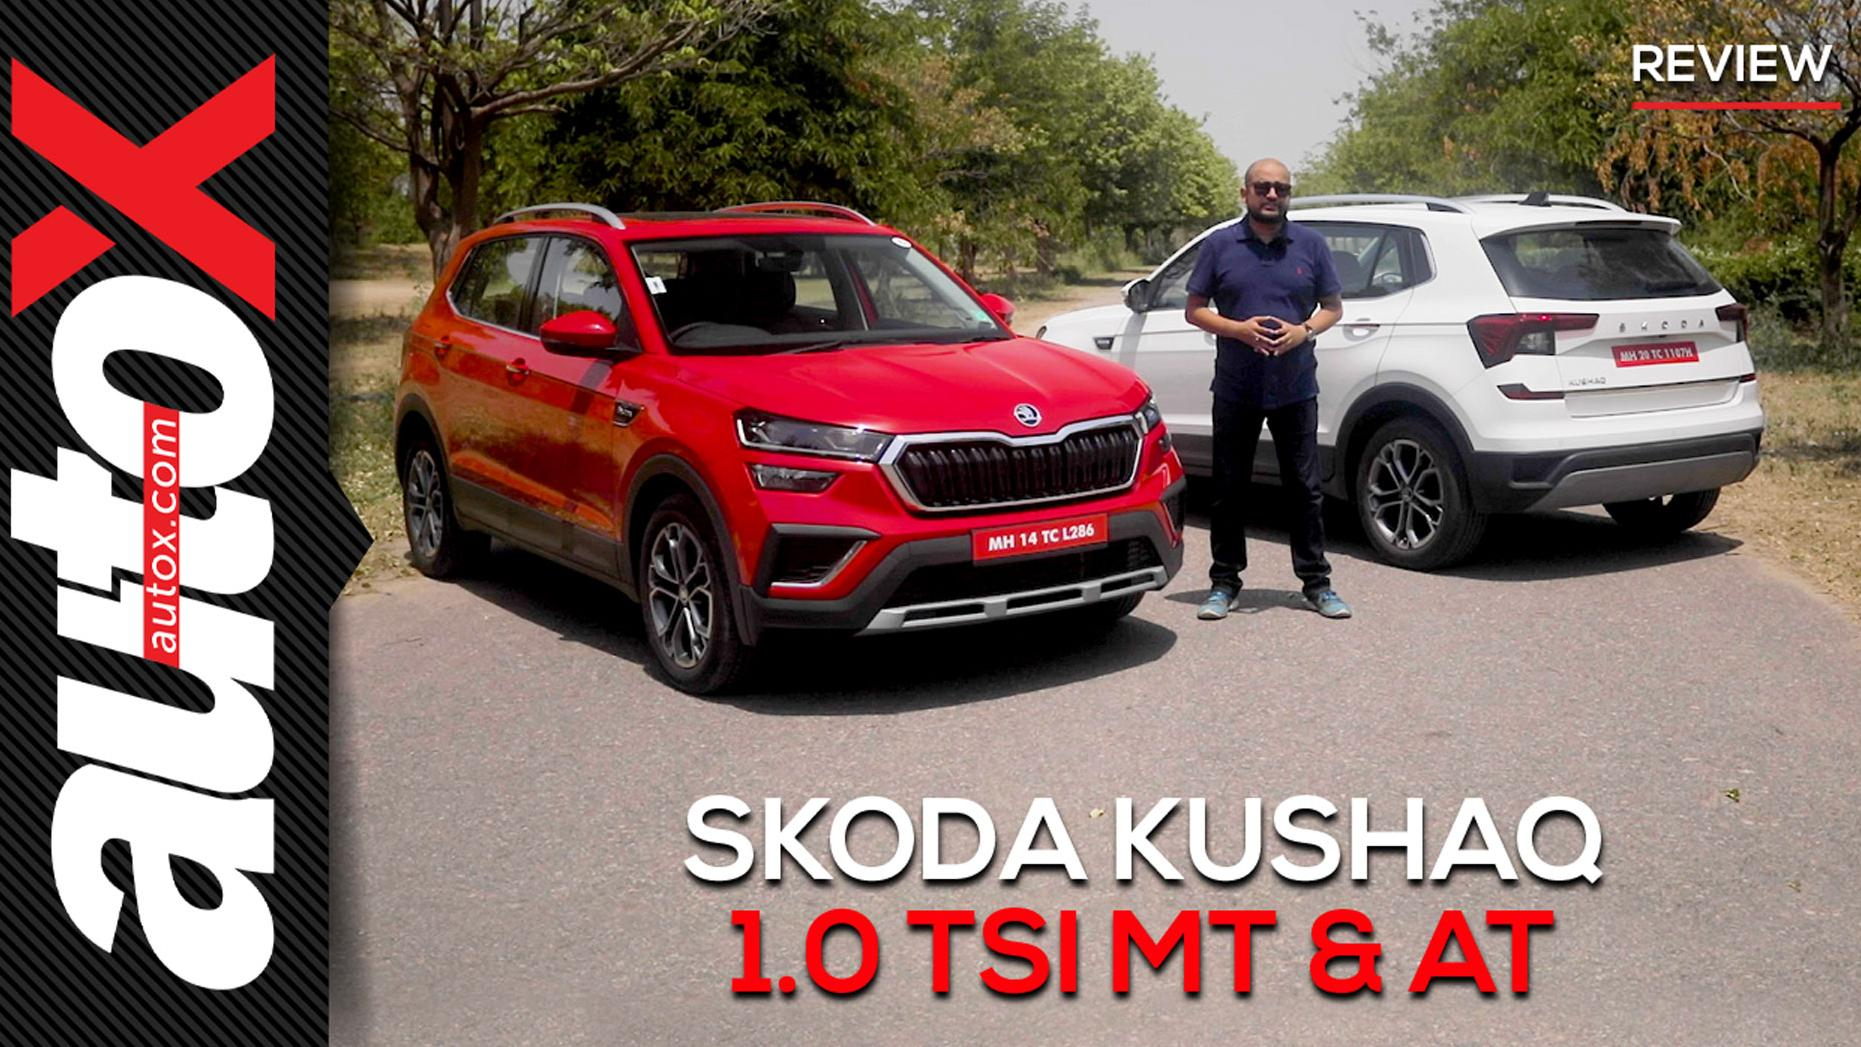 Skoda Kushaq 1.0 TSI: Is it the most fun-to-drive SUV in its segment? We find out! | Review | autoX